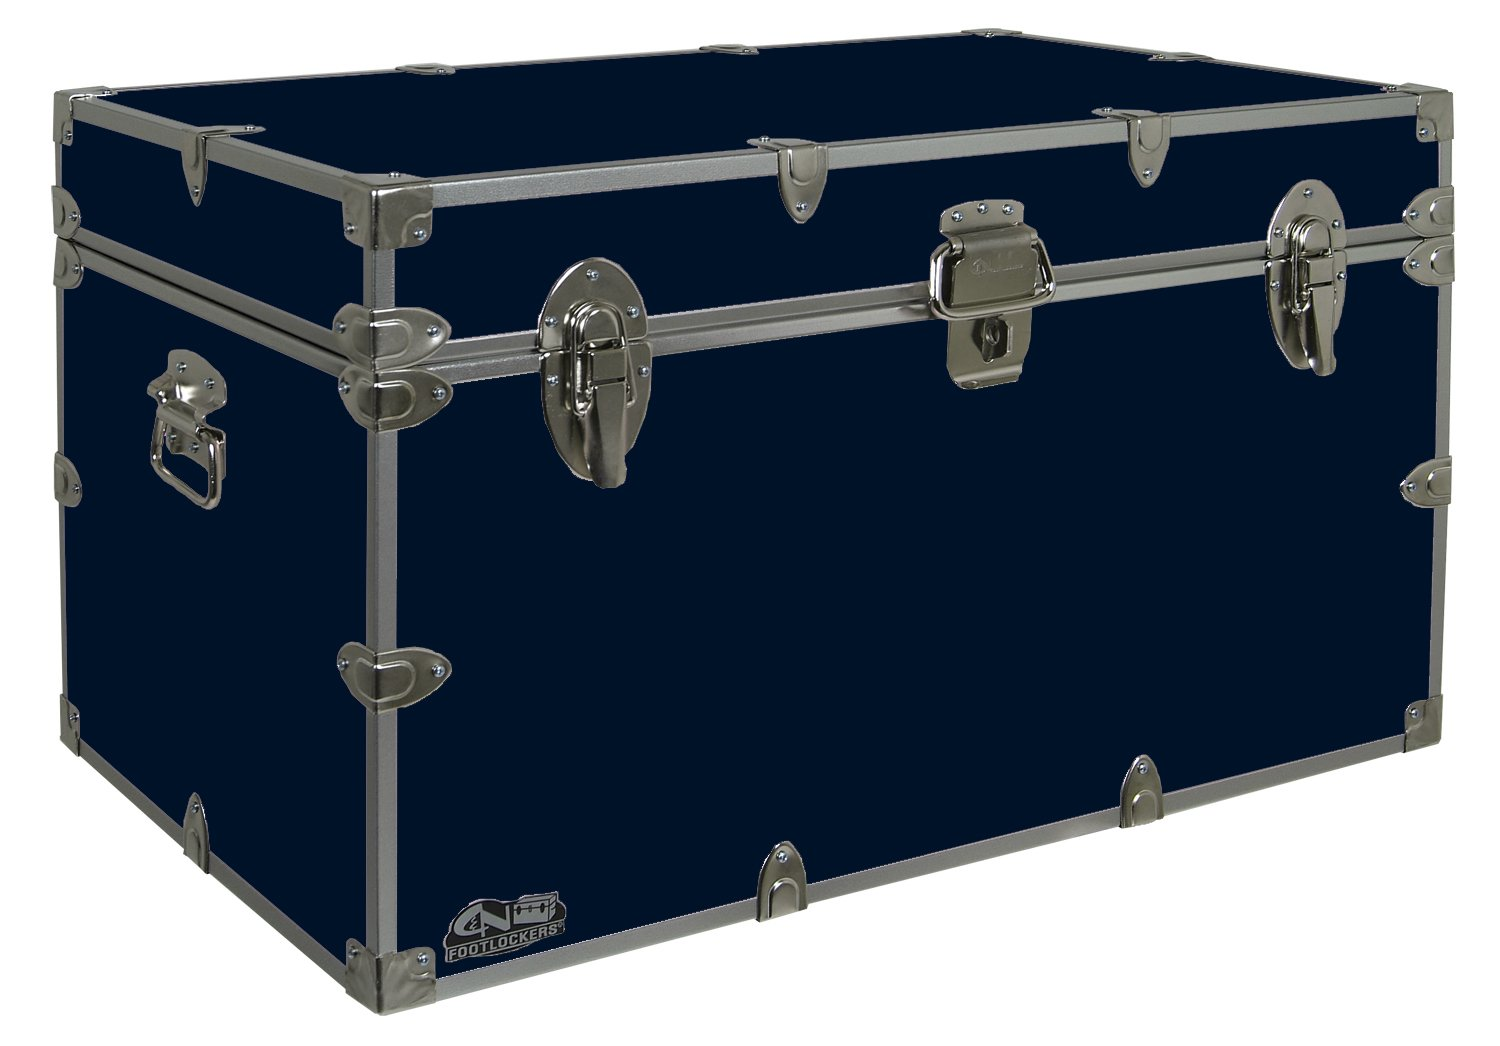 C&N Footlockers Graduate Storage Trunk - Large College Dorm Chest - Durable with Lid Stay - 32 x 18 x 18.5 Inches (Navy)